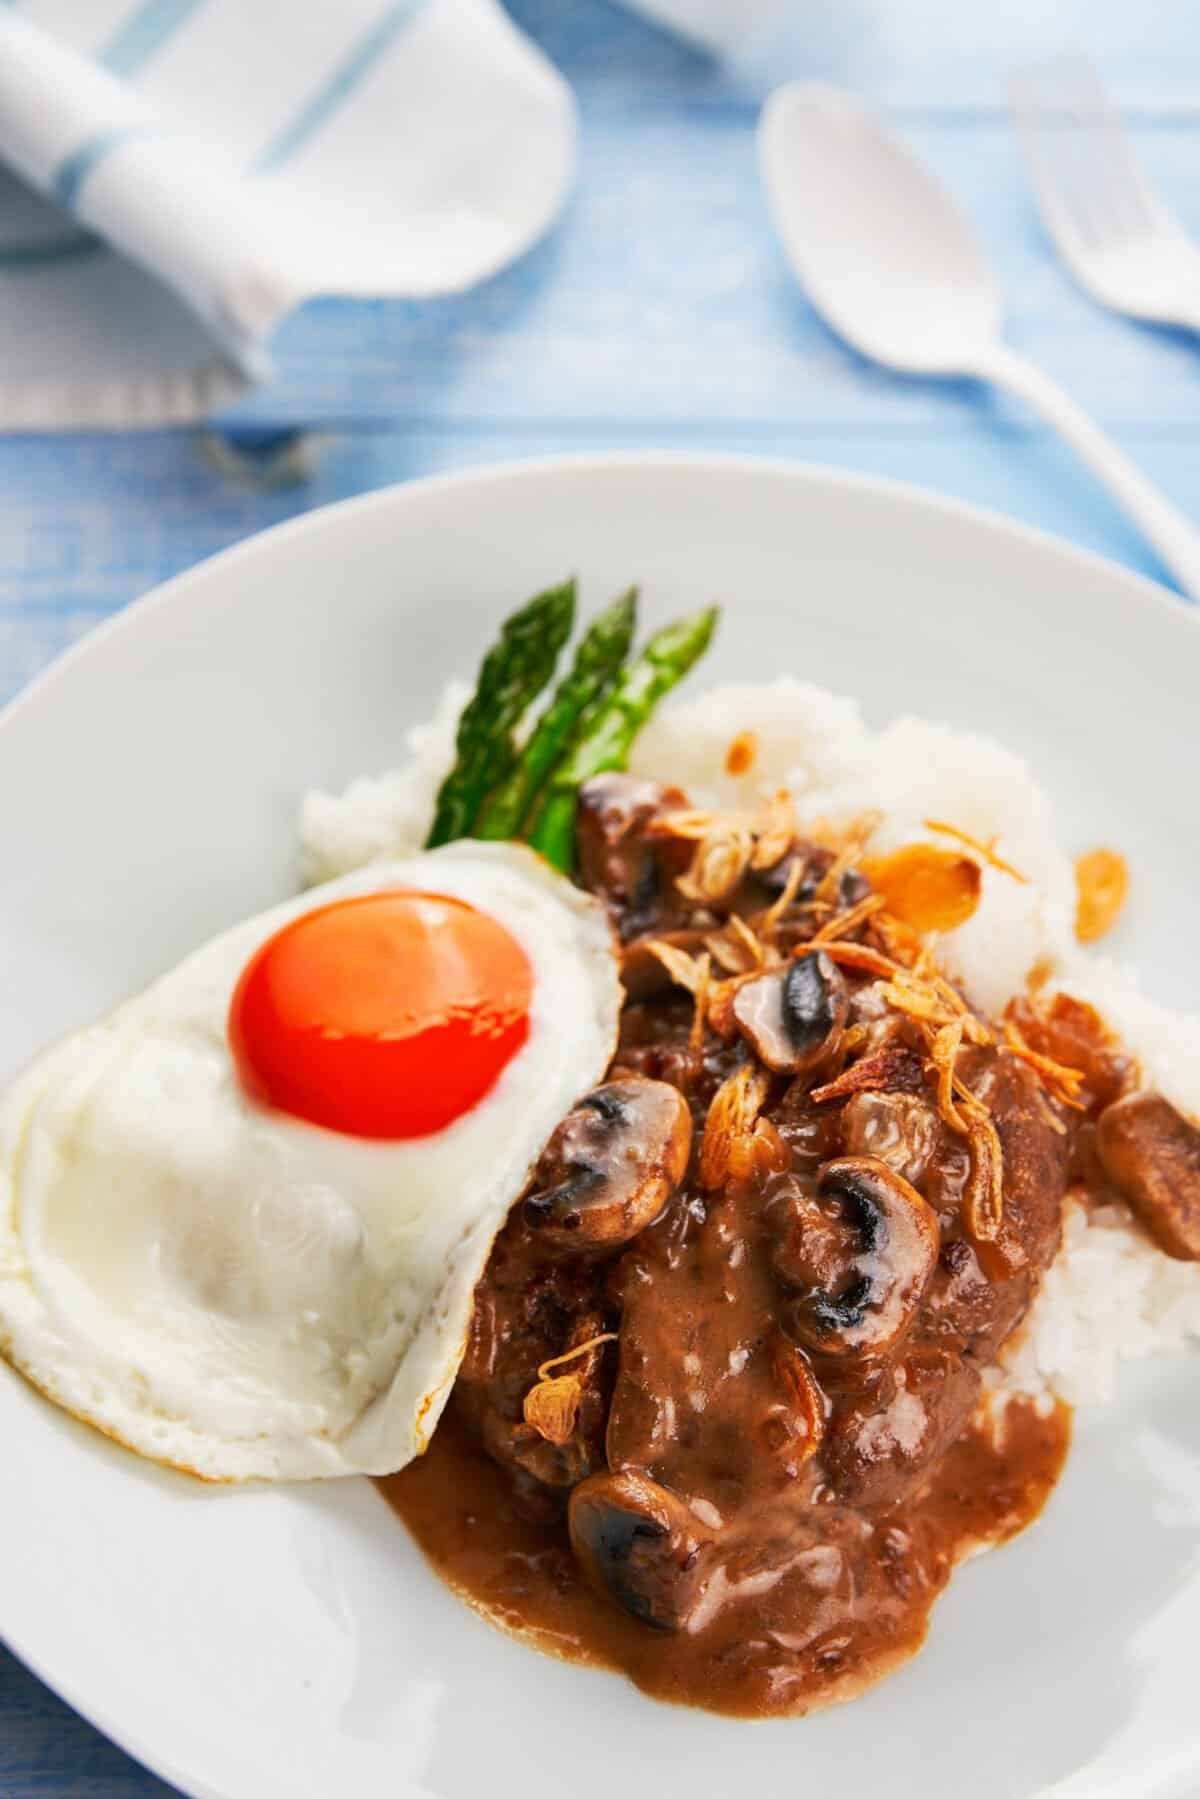 With tender seasoned hamburger patties smothered in pan-gravy, topped with a fried egg and crispy fried onions, Loco Moco is a mouthwatering Hawaiian classic that's easy to make and satisfying.